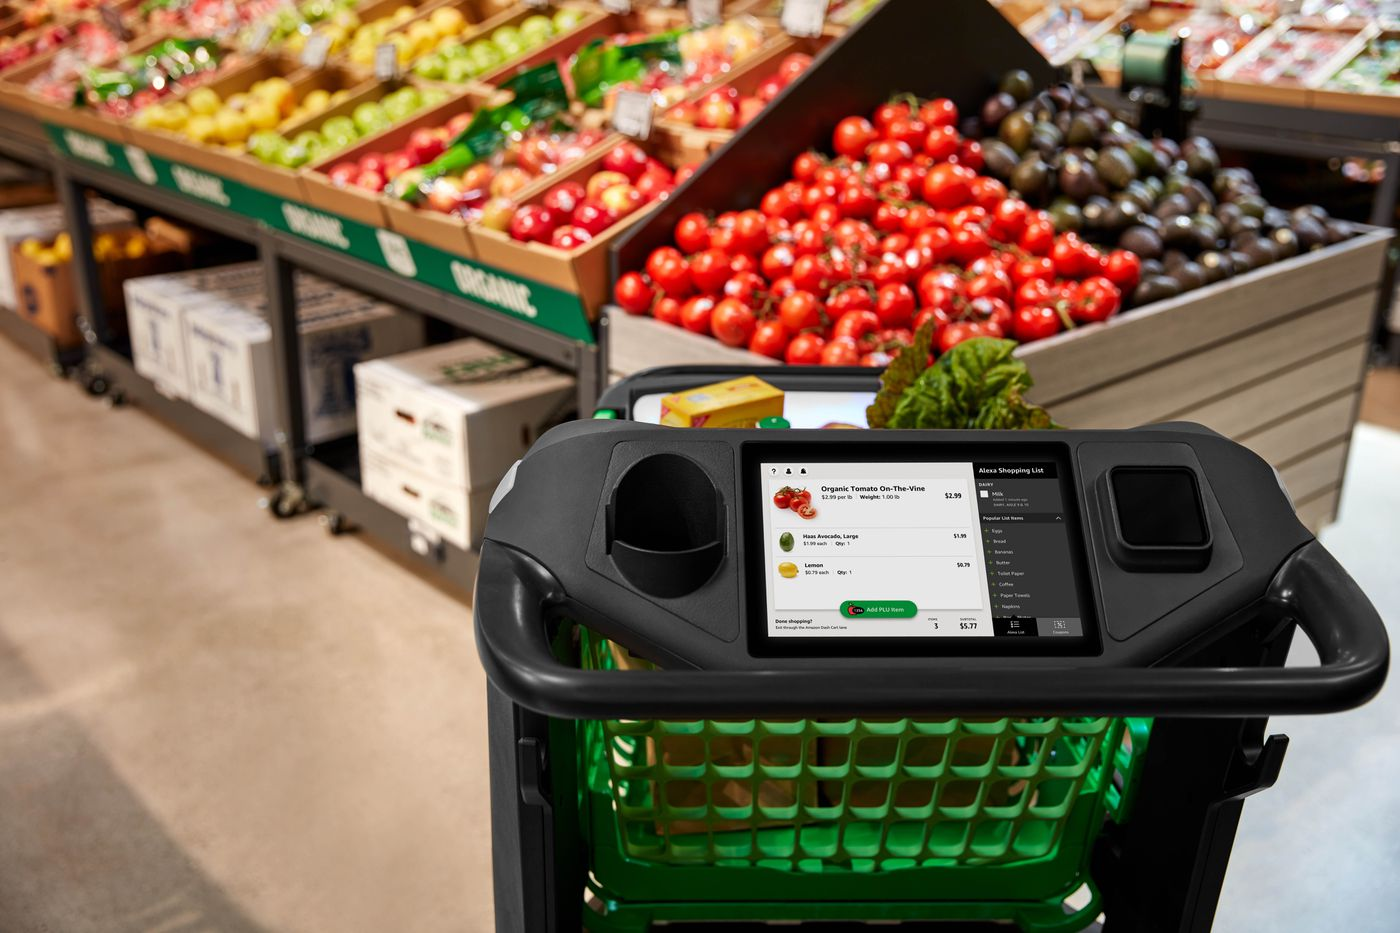 Amazon S New Smart Shopping Cart Lets You Check Out Without A Cashier The Verge